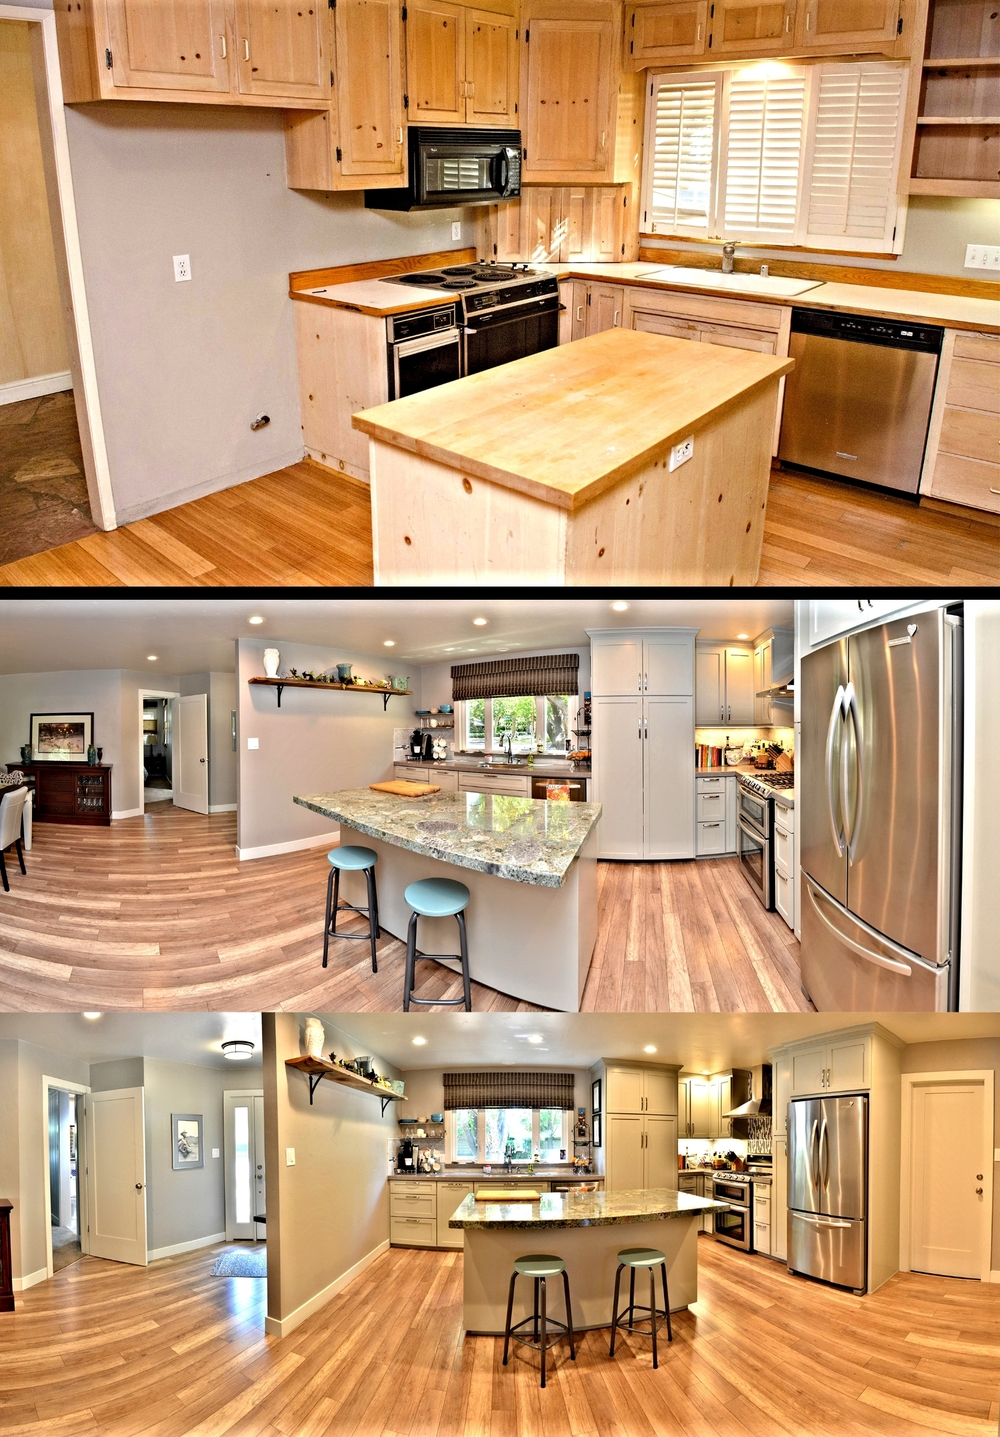 Berkeley_KitchenPortfolio4.jpg